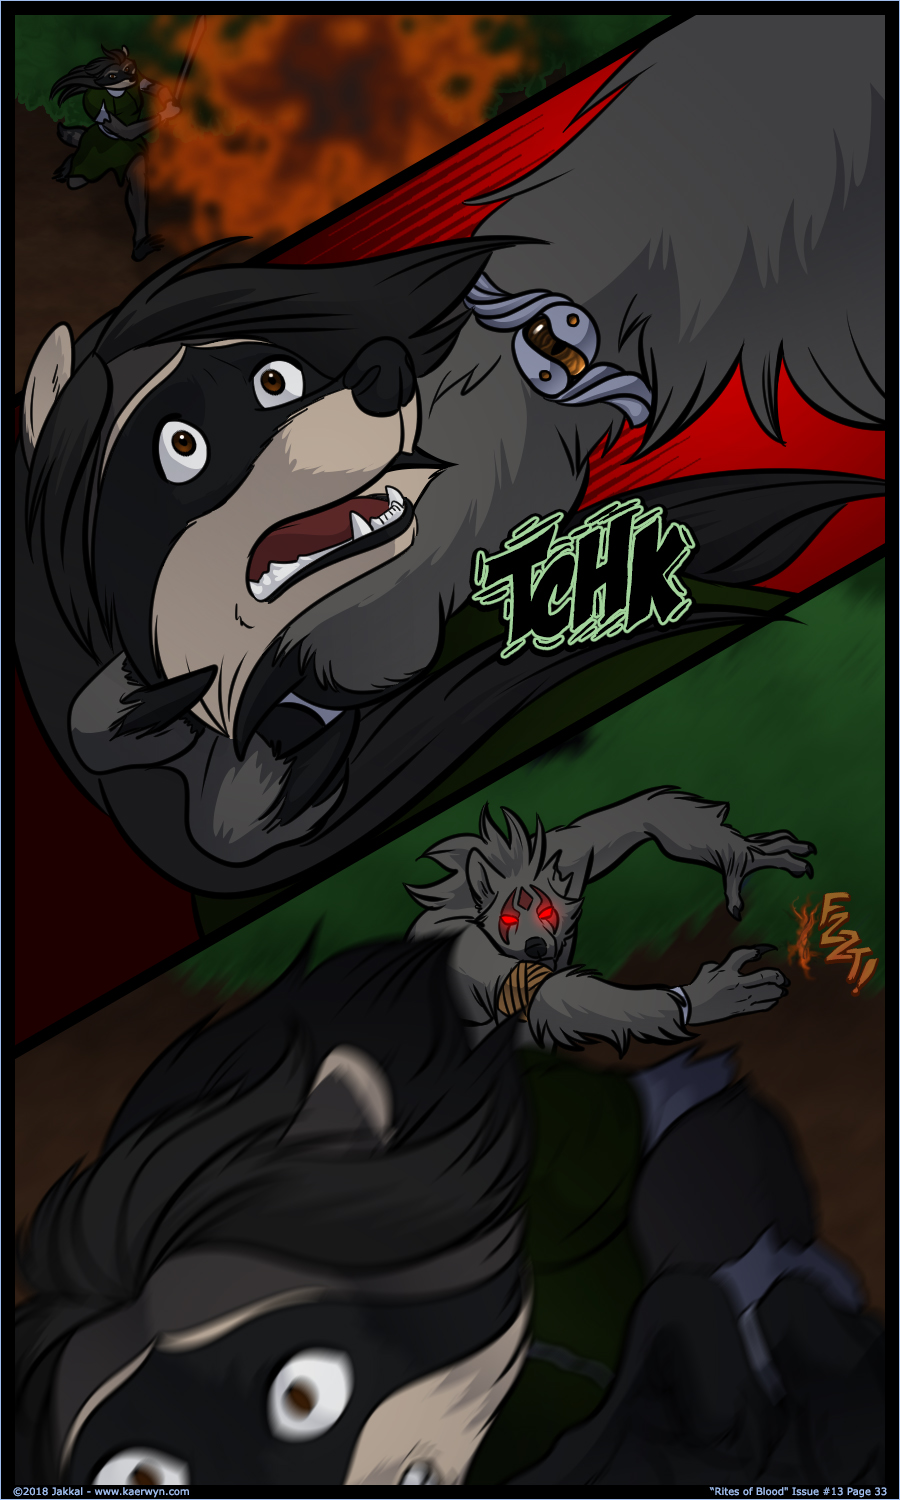 Issue 13 Page 33